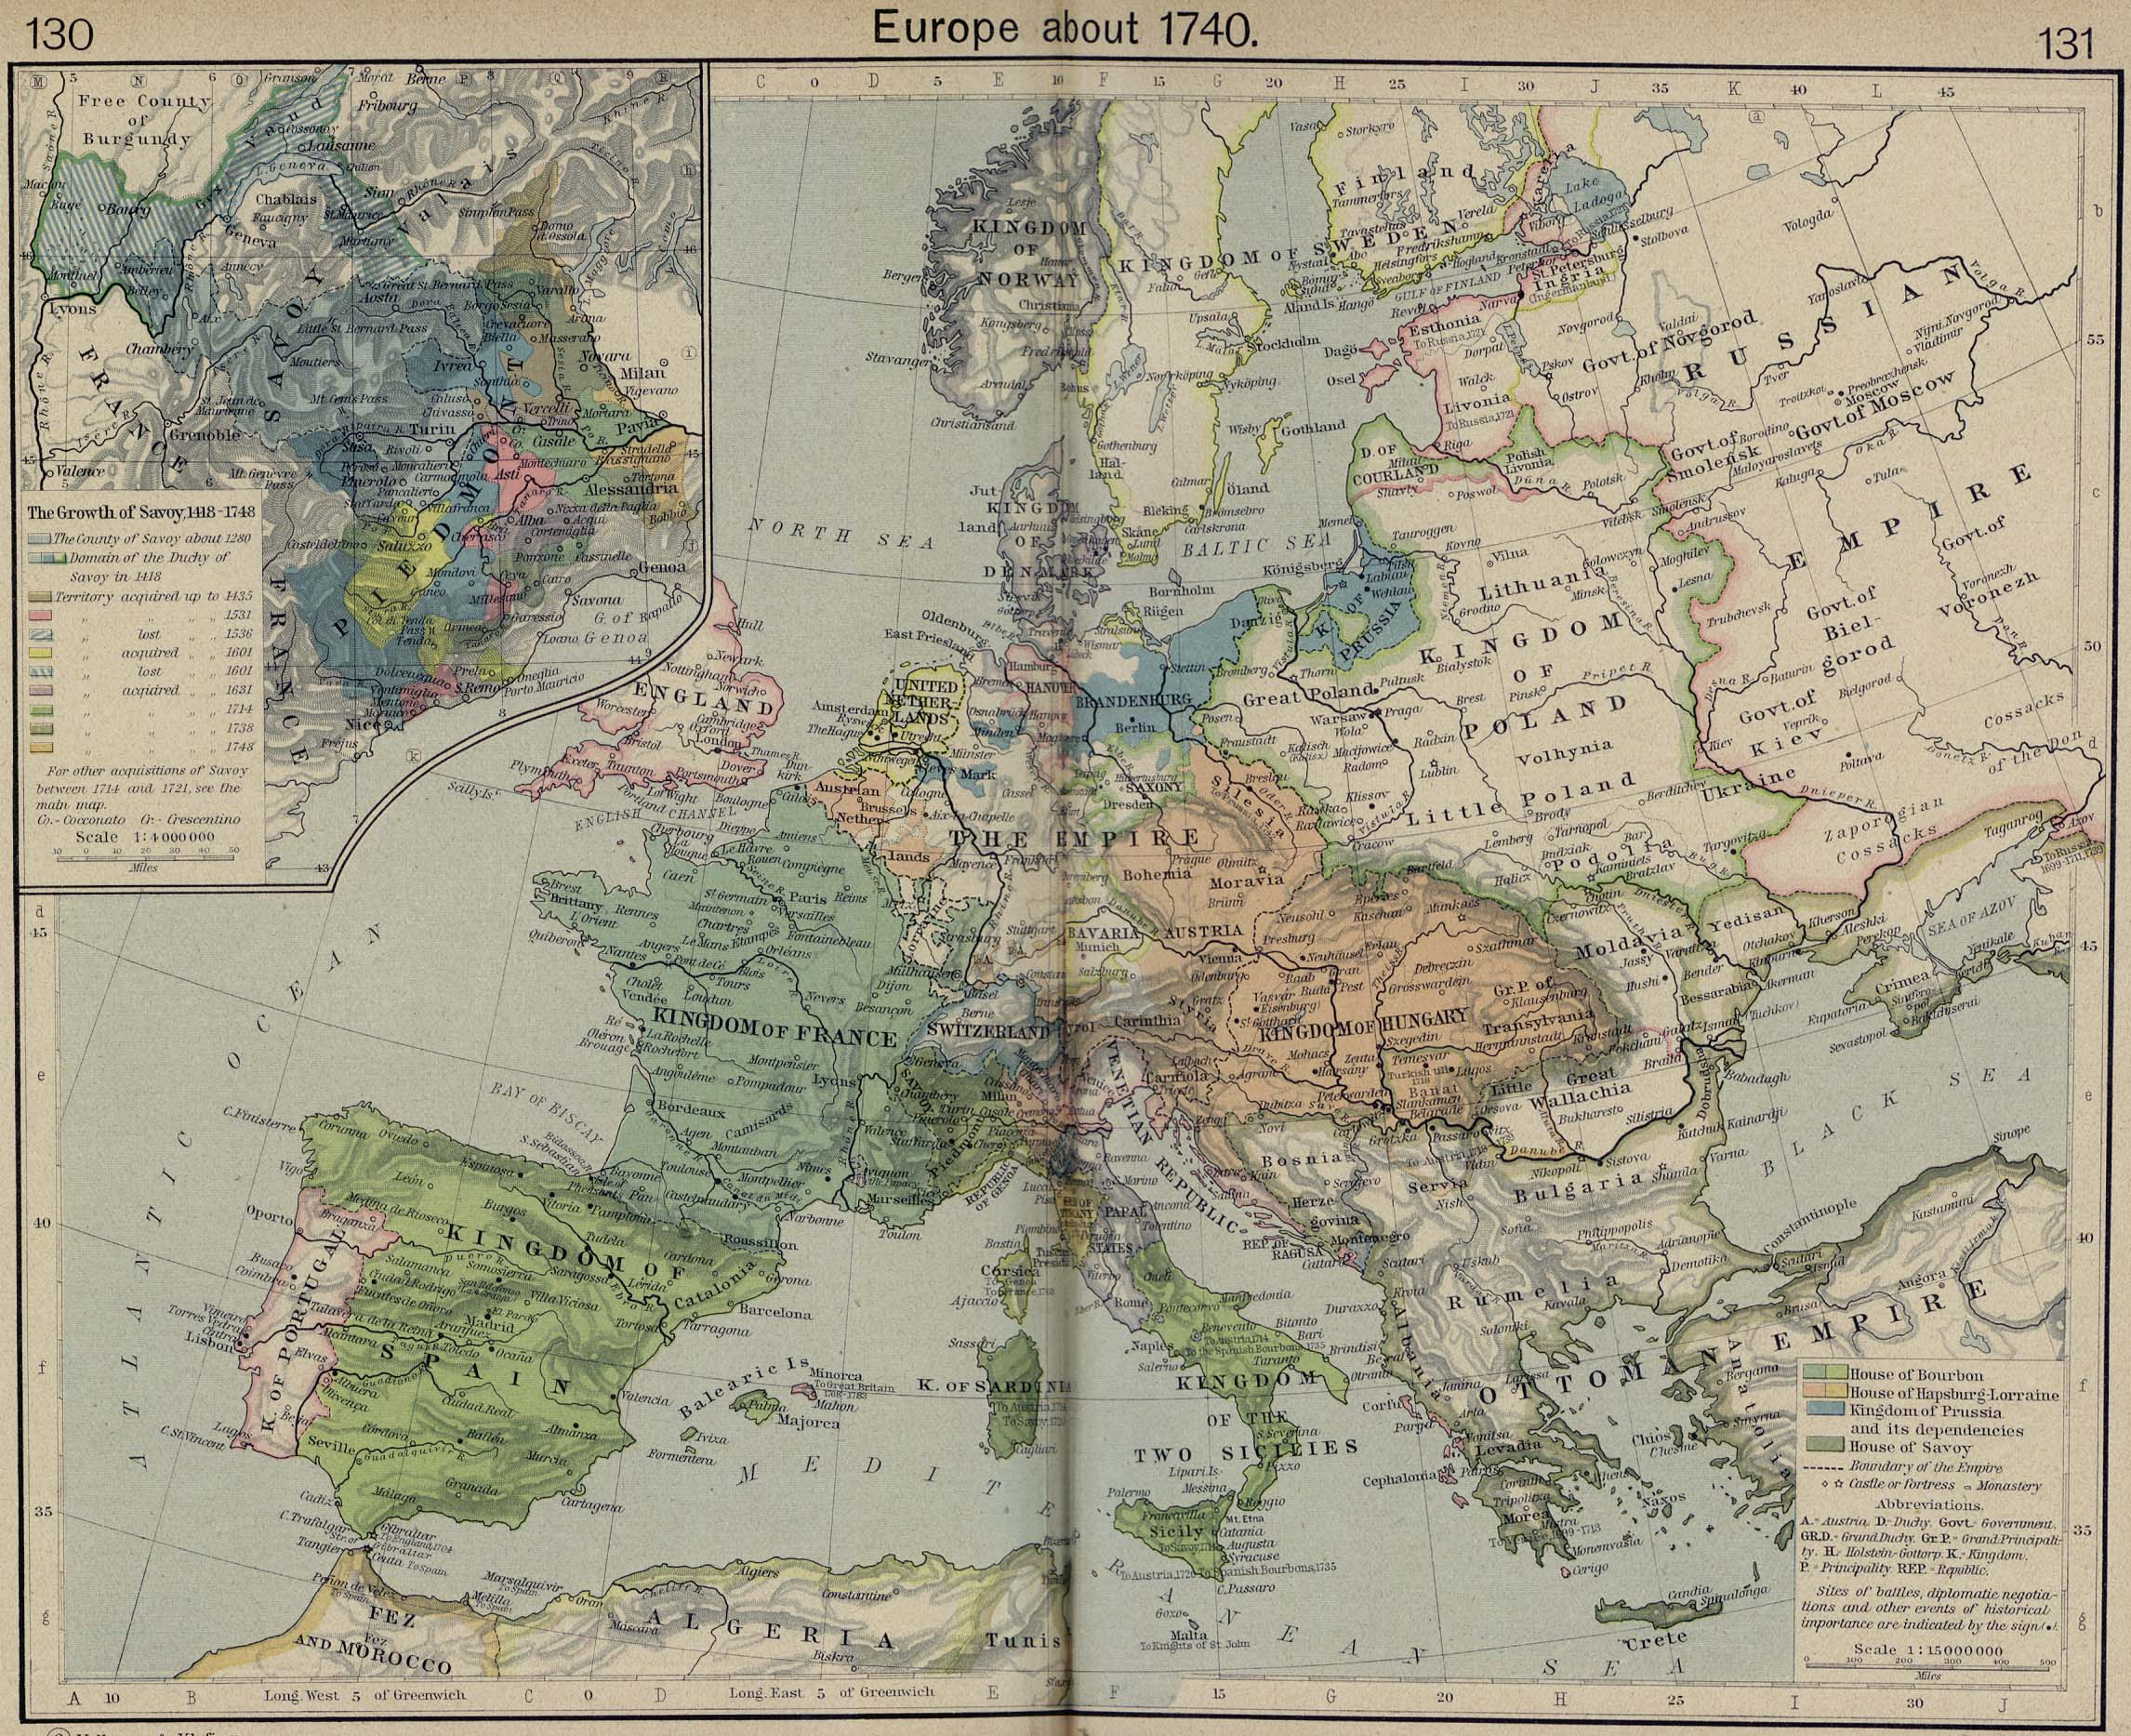 Europe about 1740